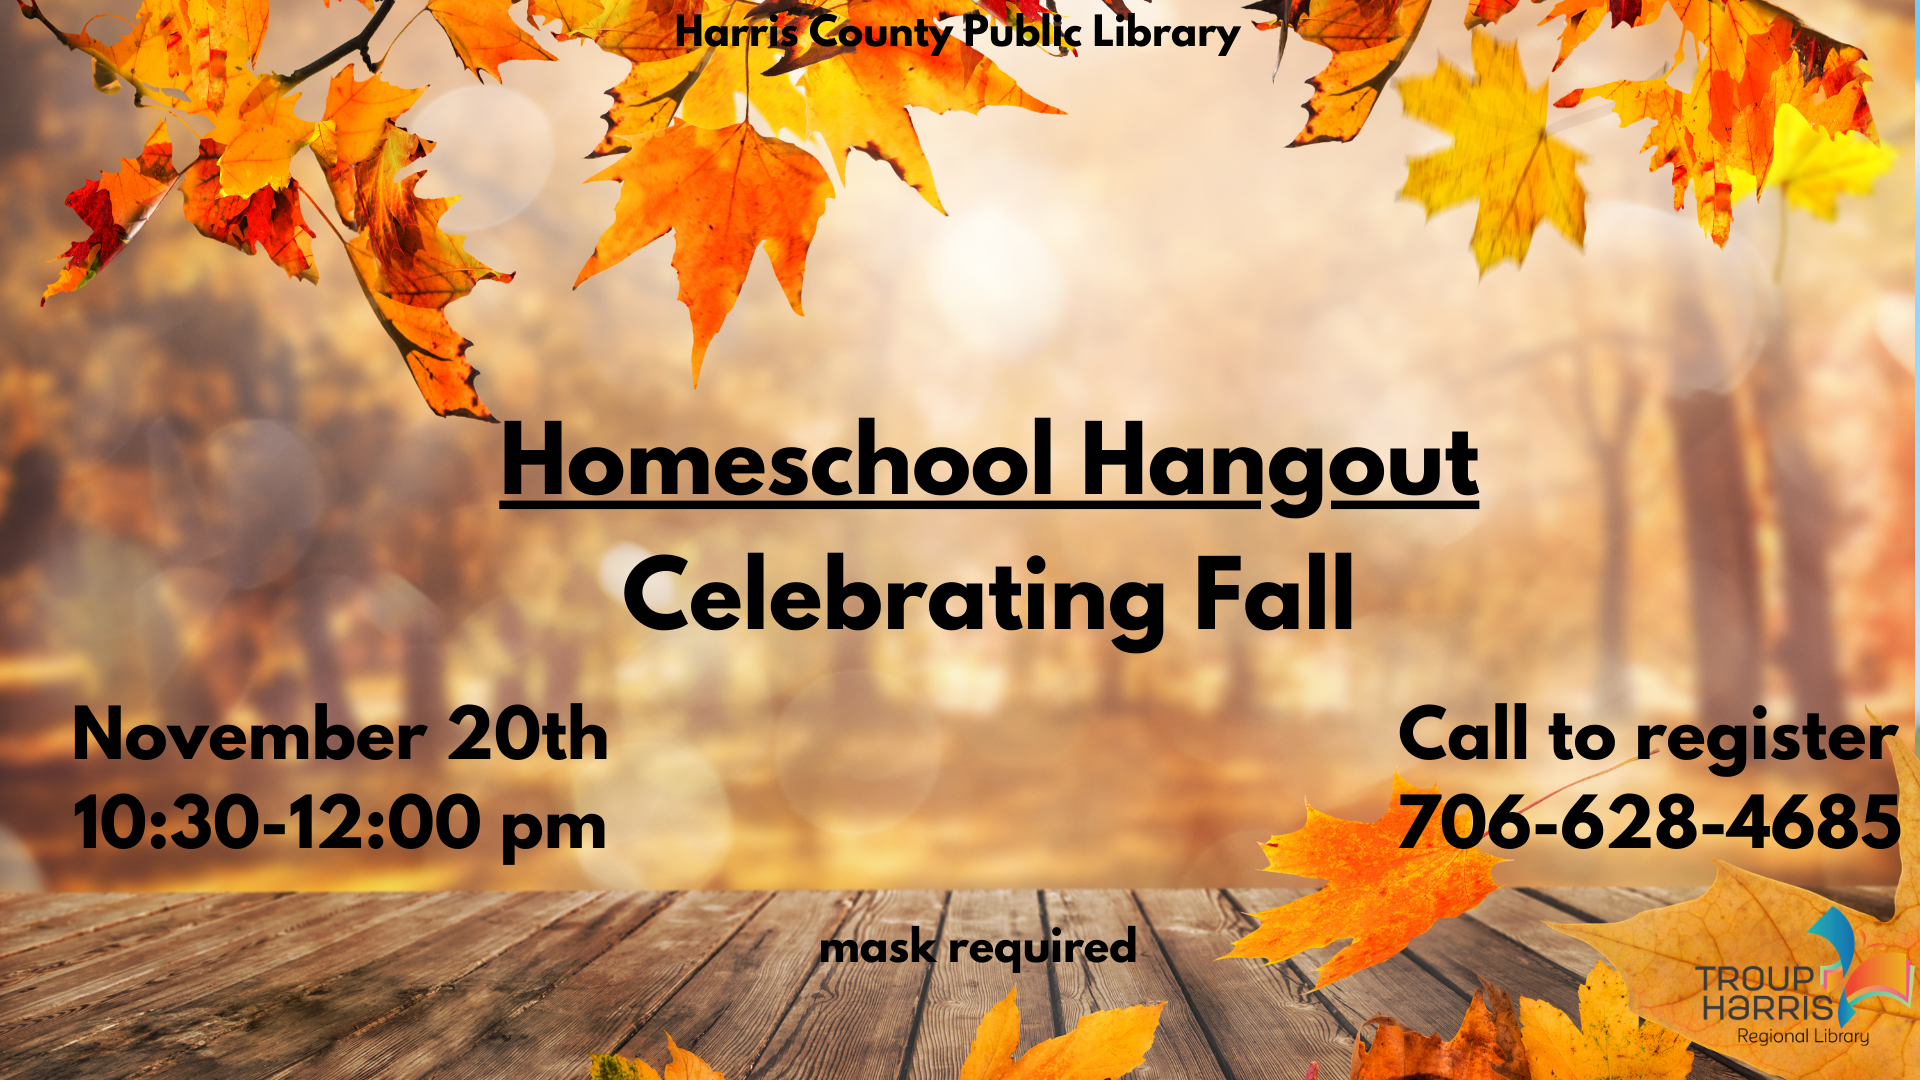 Homeschool Hangout - Celebrating Fall